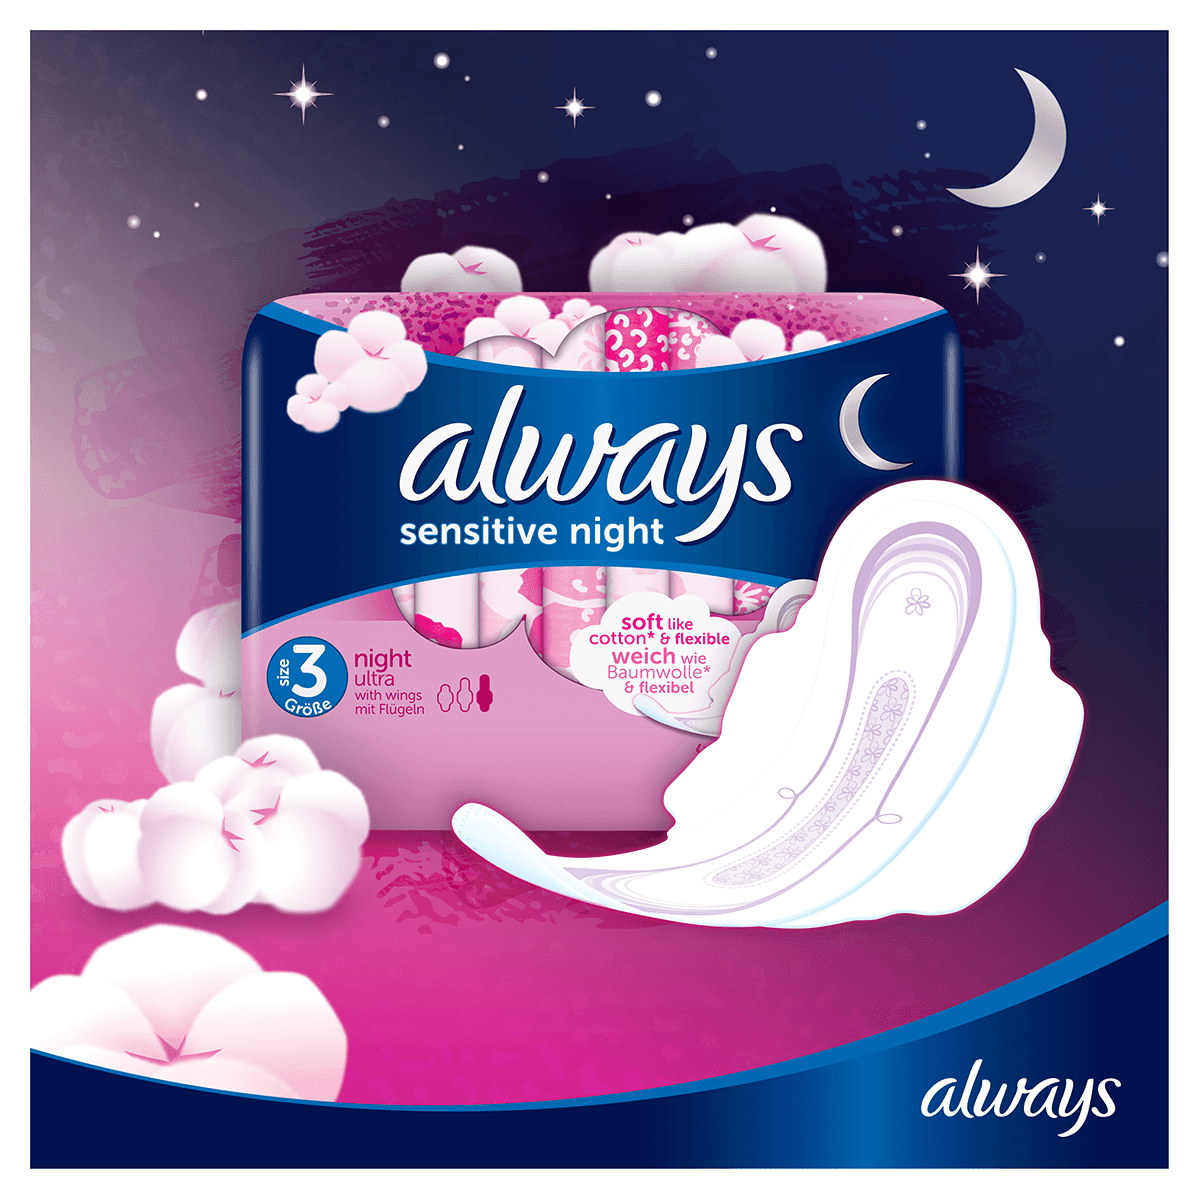 ALWAYS Sensitive Normal Sanitary Towel with wings Menstrual Cycle